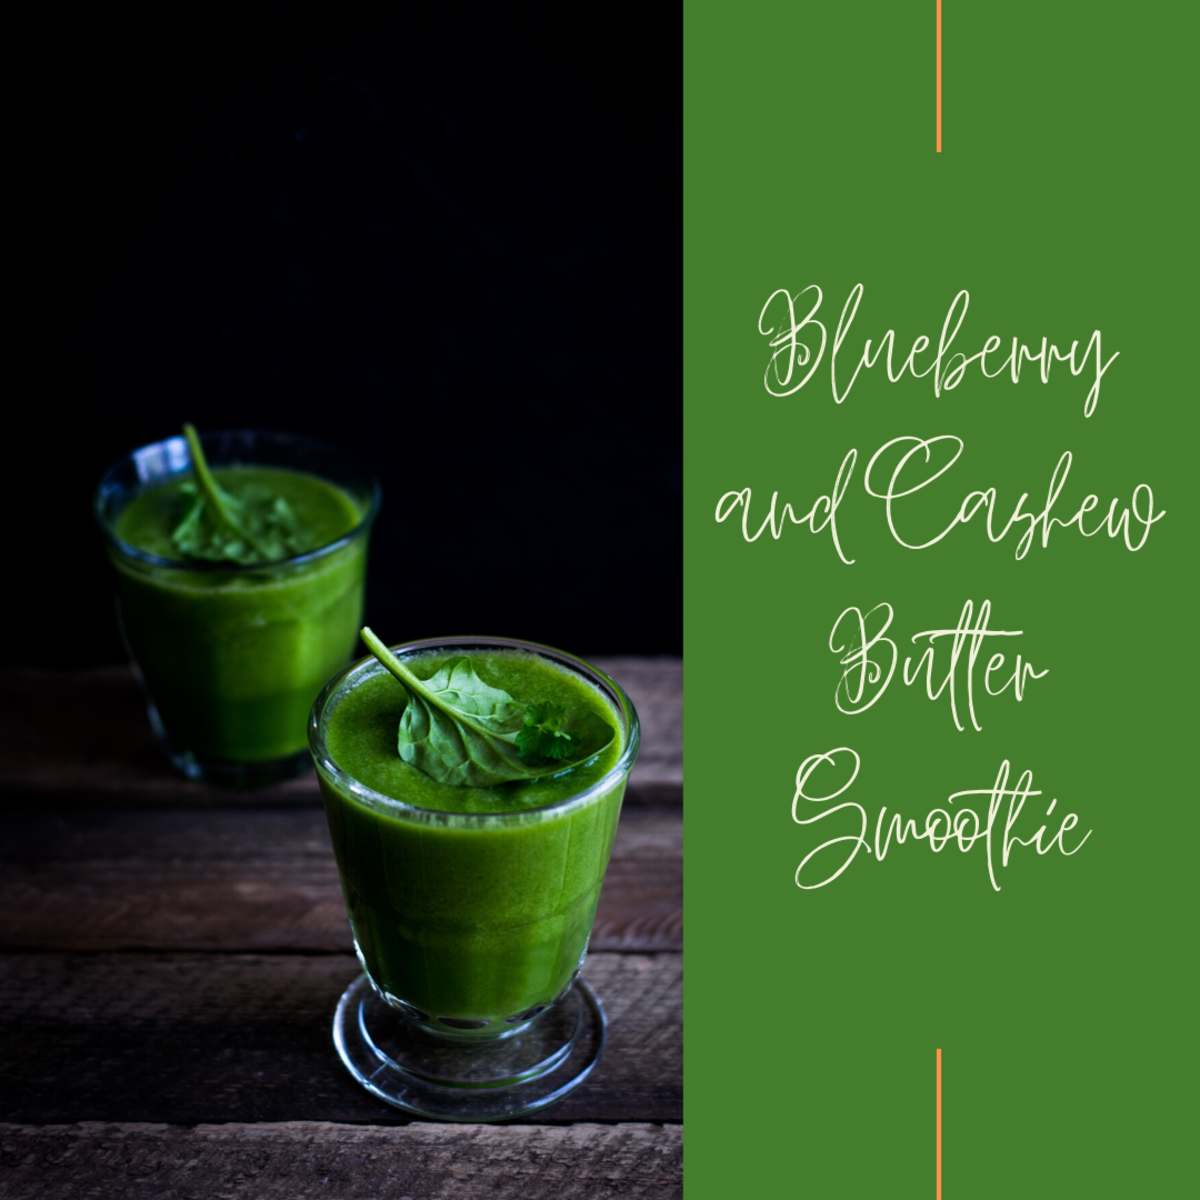 Green smoothie using cashew butter and blueberries.